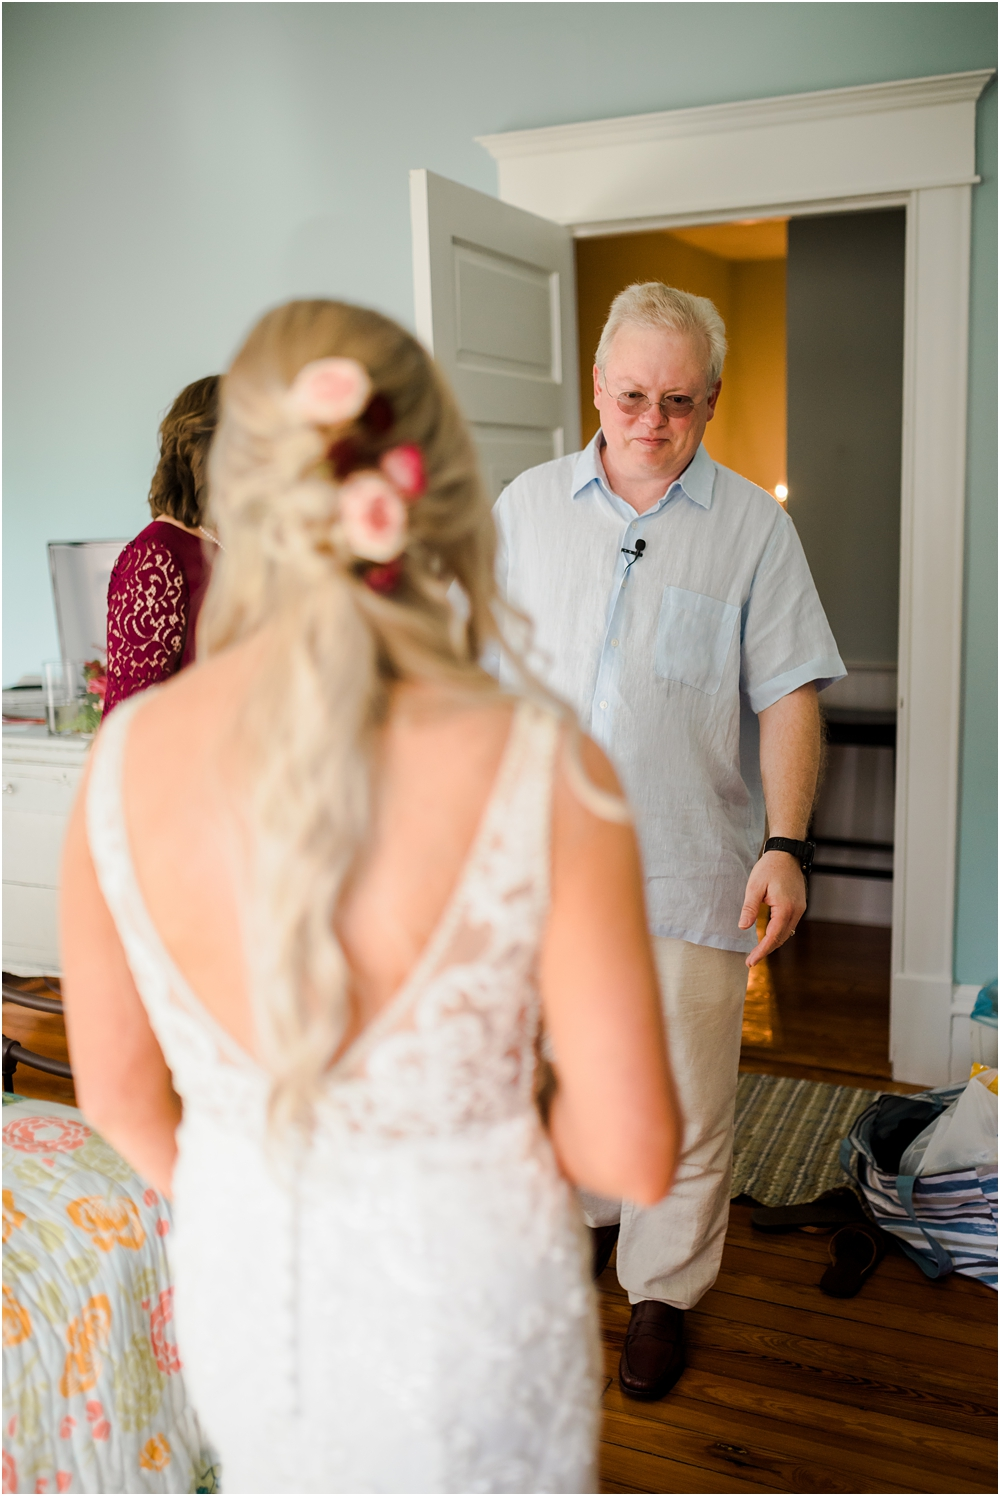 mcglothlin-wedding-kiersten-stevenson-photography-30a-panama-city-beach-dothan-tallahassee-(40-of-145).jpg